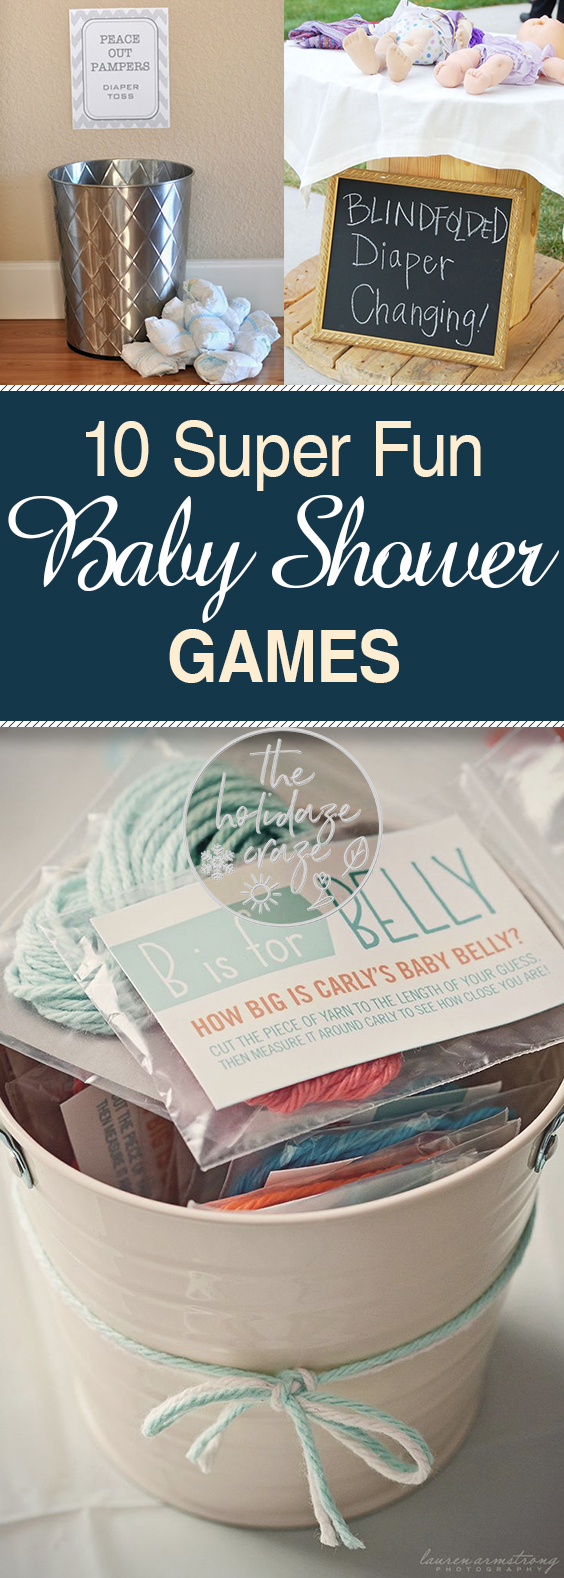 Baby Shower Games, Fun Games for A Baby Shower, Baby Shower Games, how to Throw a Baby Shower, Fun Activities for Baby Showers, Popular Pin